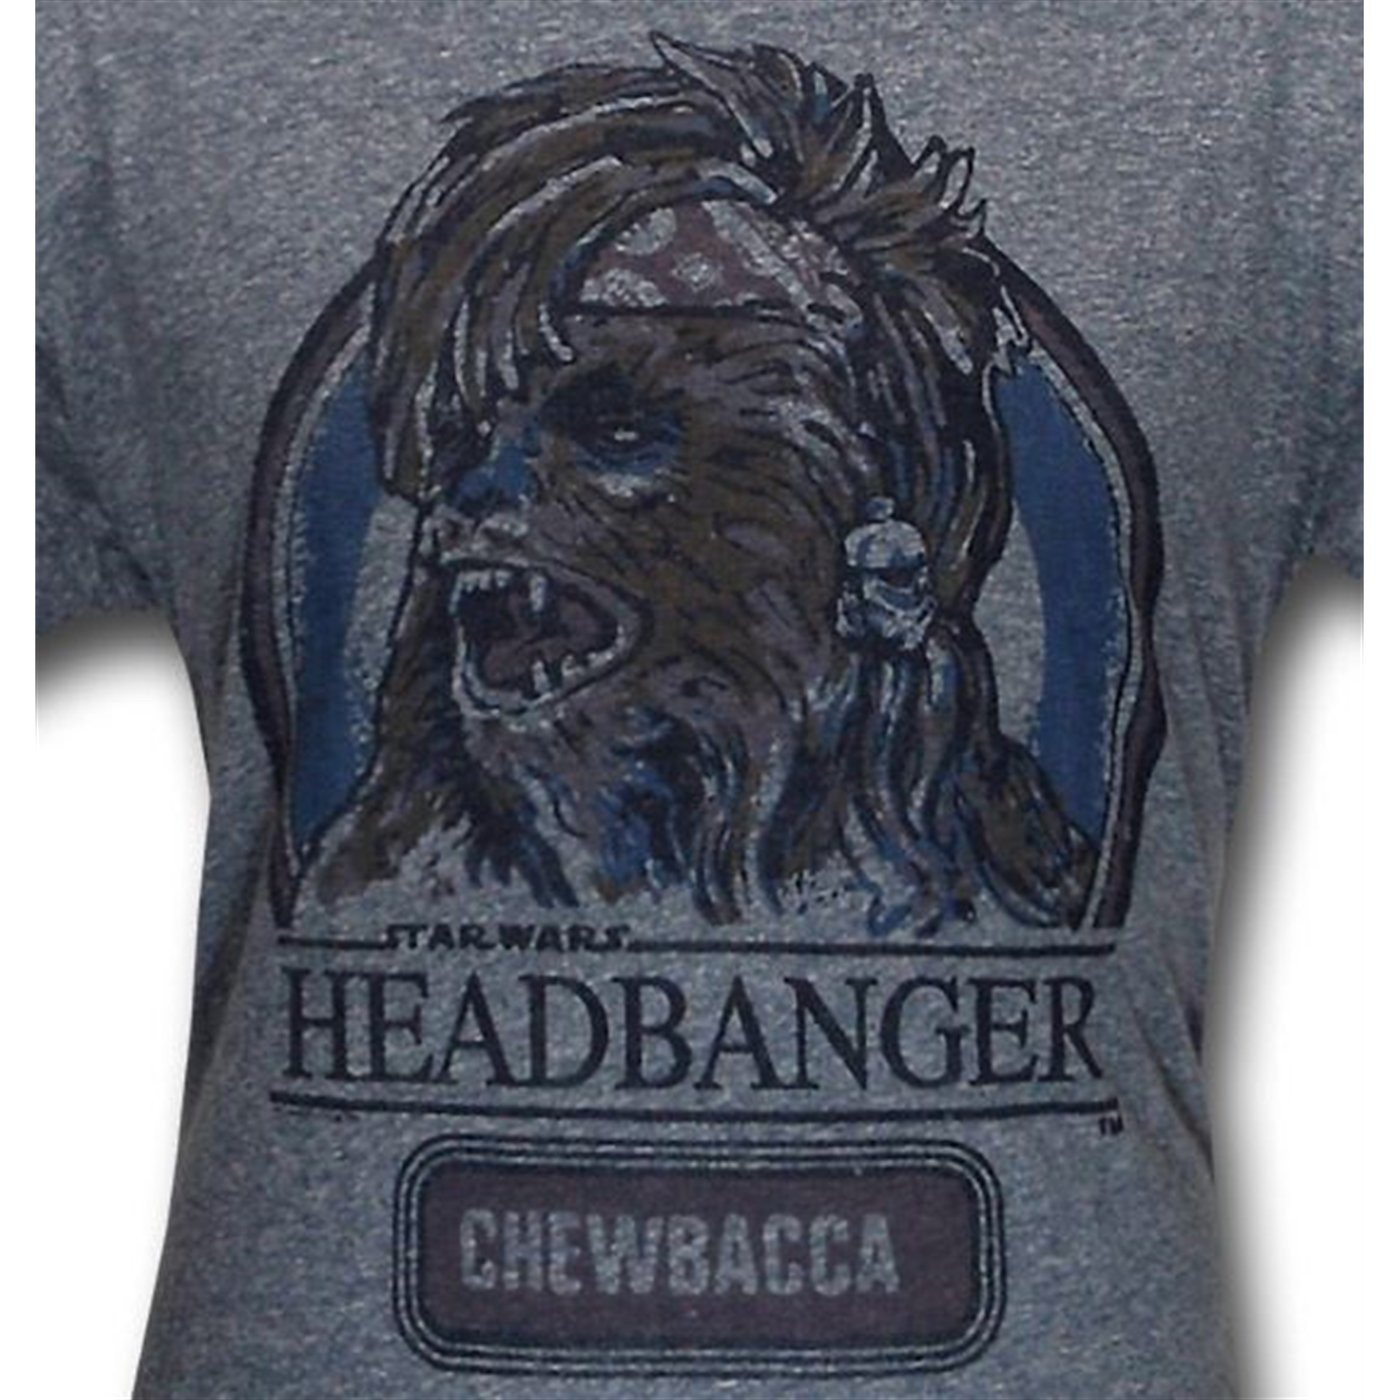 Star Wars Headbanger Triblend Junk Food T-Shirt